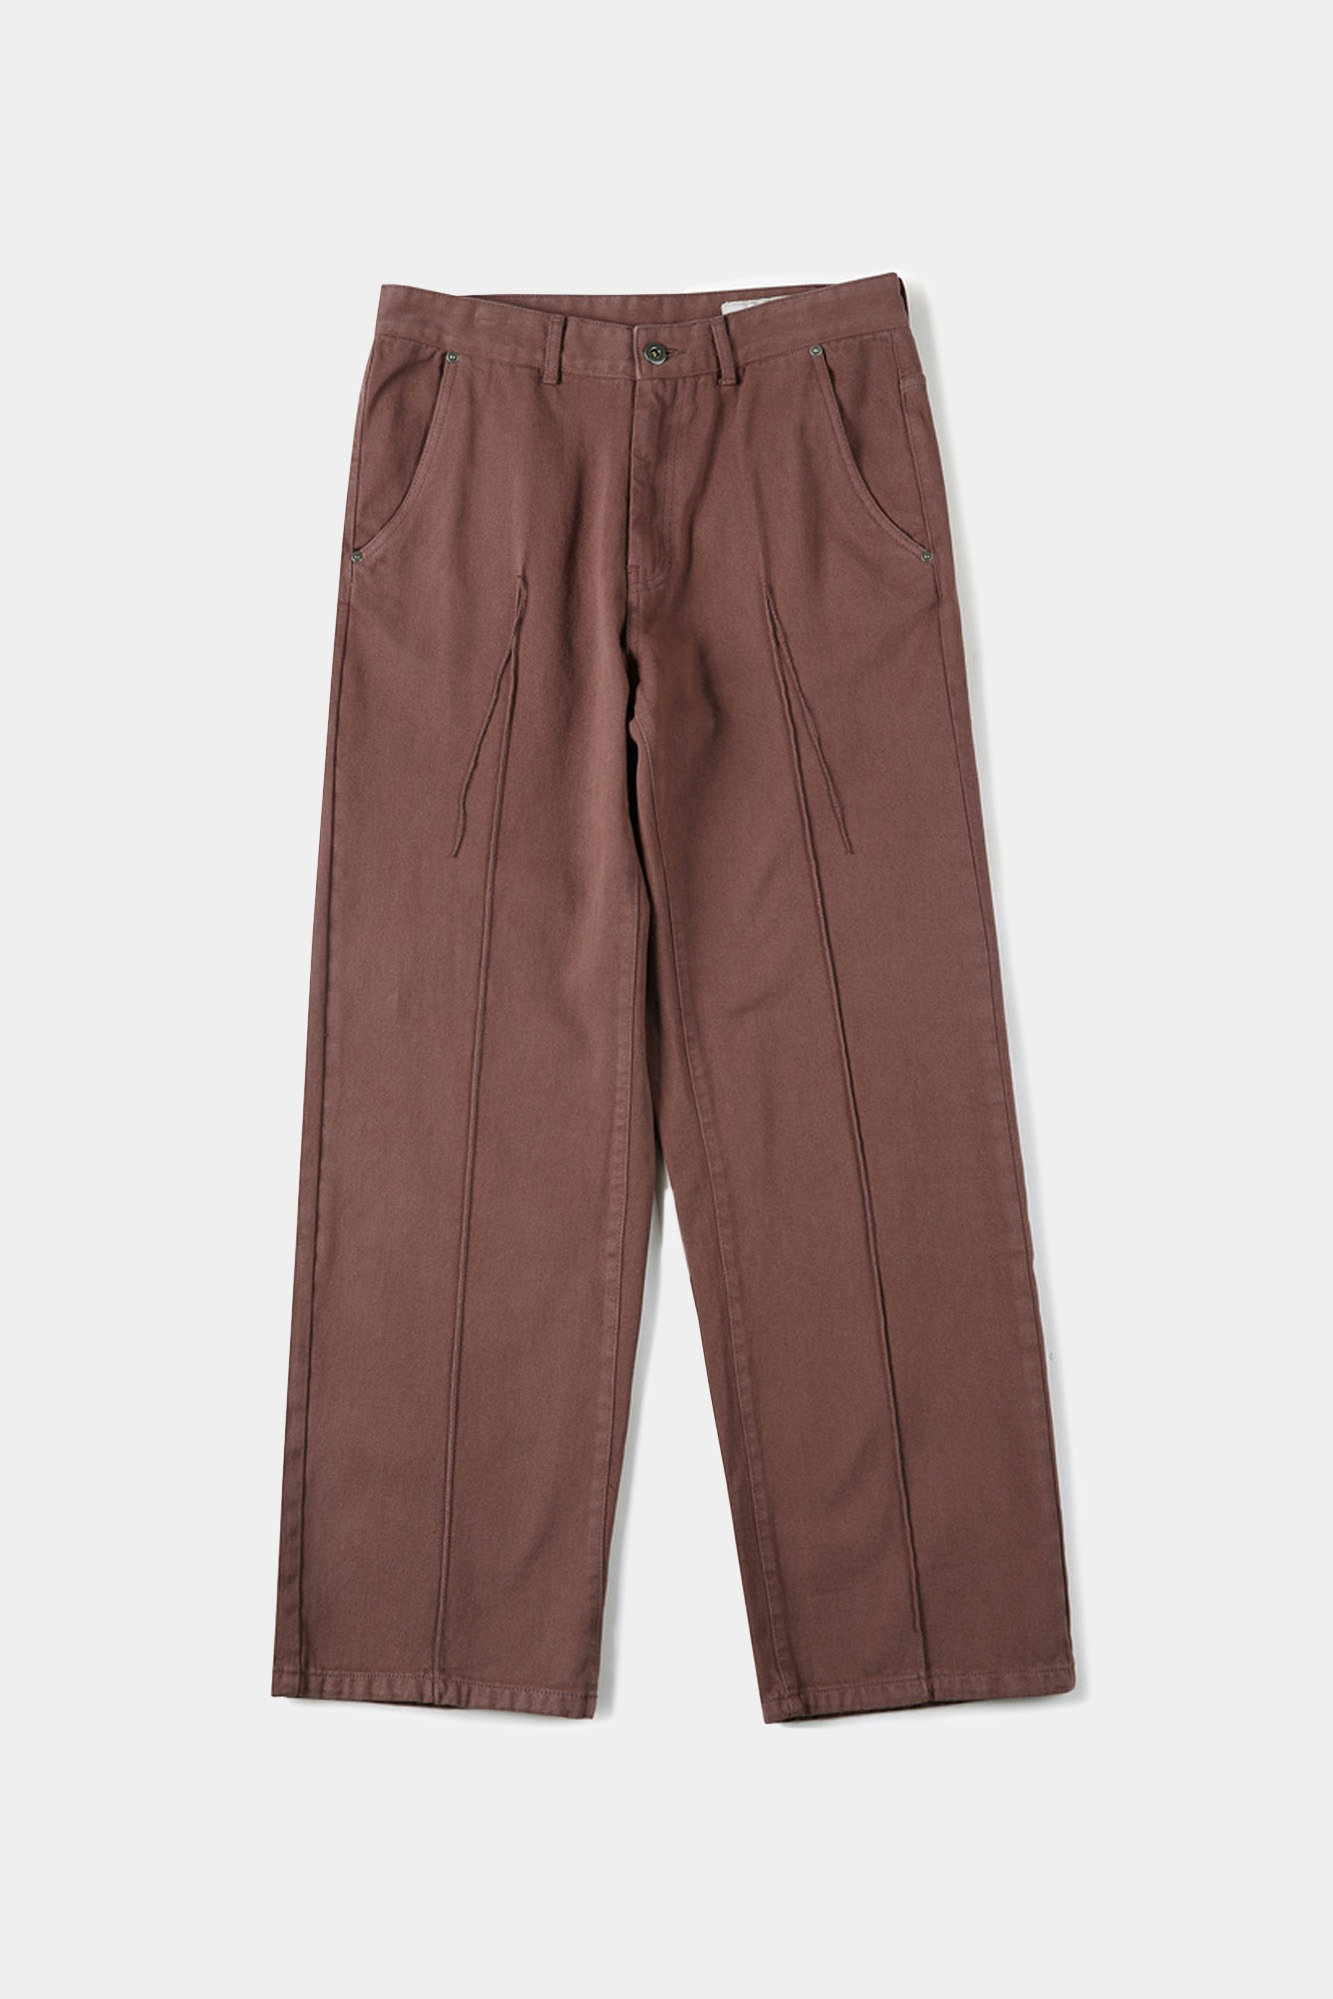 "SHIRTER Garment Dyed Wide Original Denim Pants ""Marsala"""